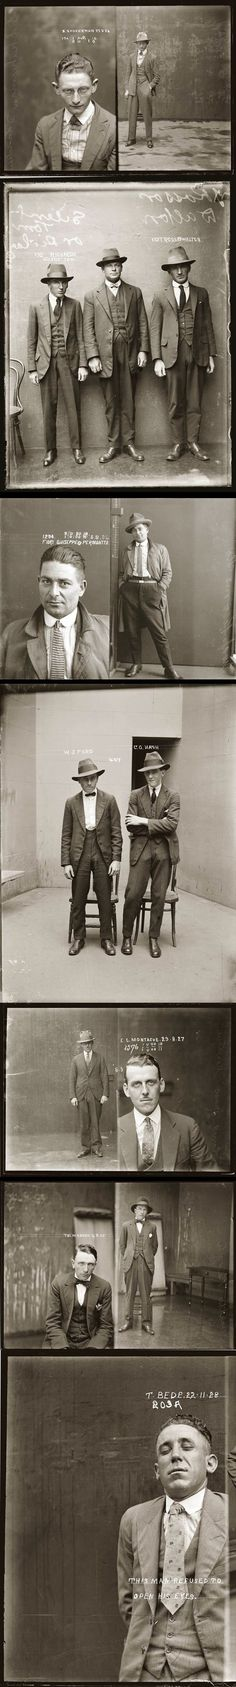 cool-police-mugshots-old-pictures-stand